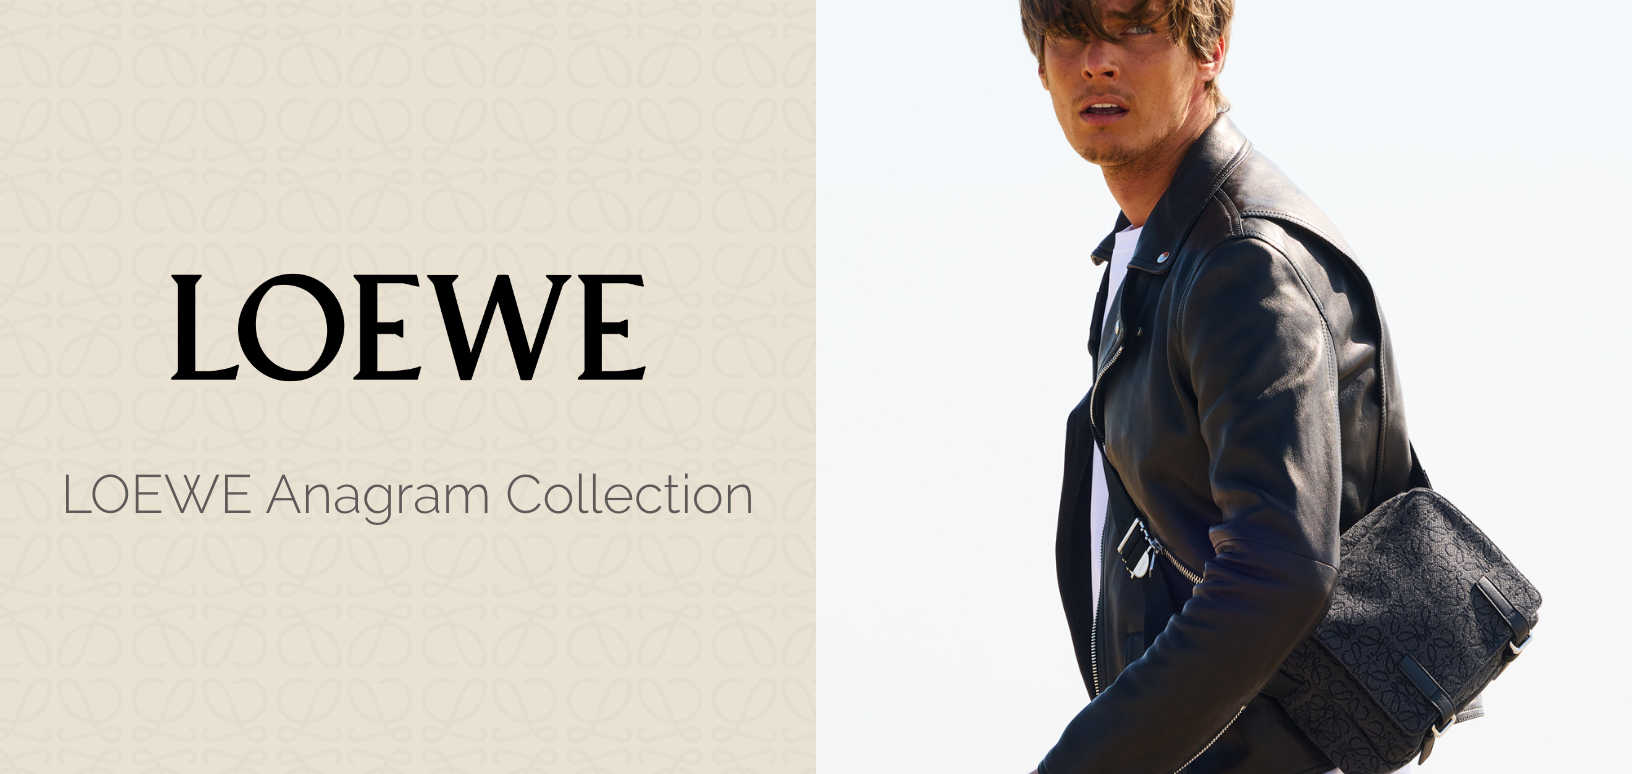 LOEWE Anagram Collection